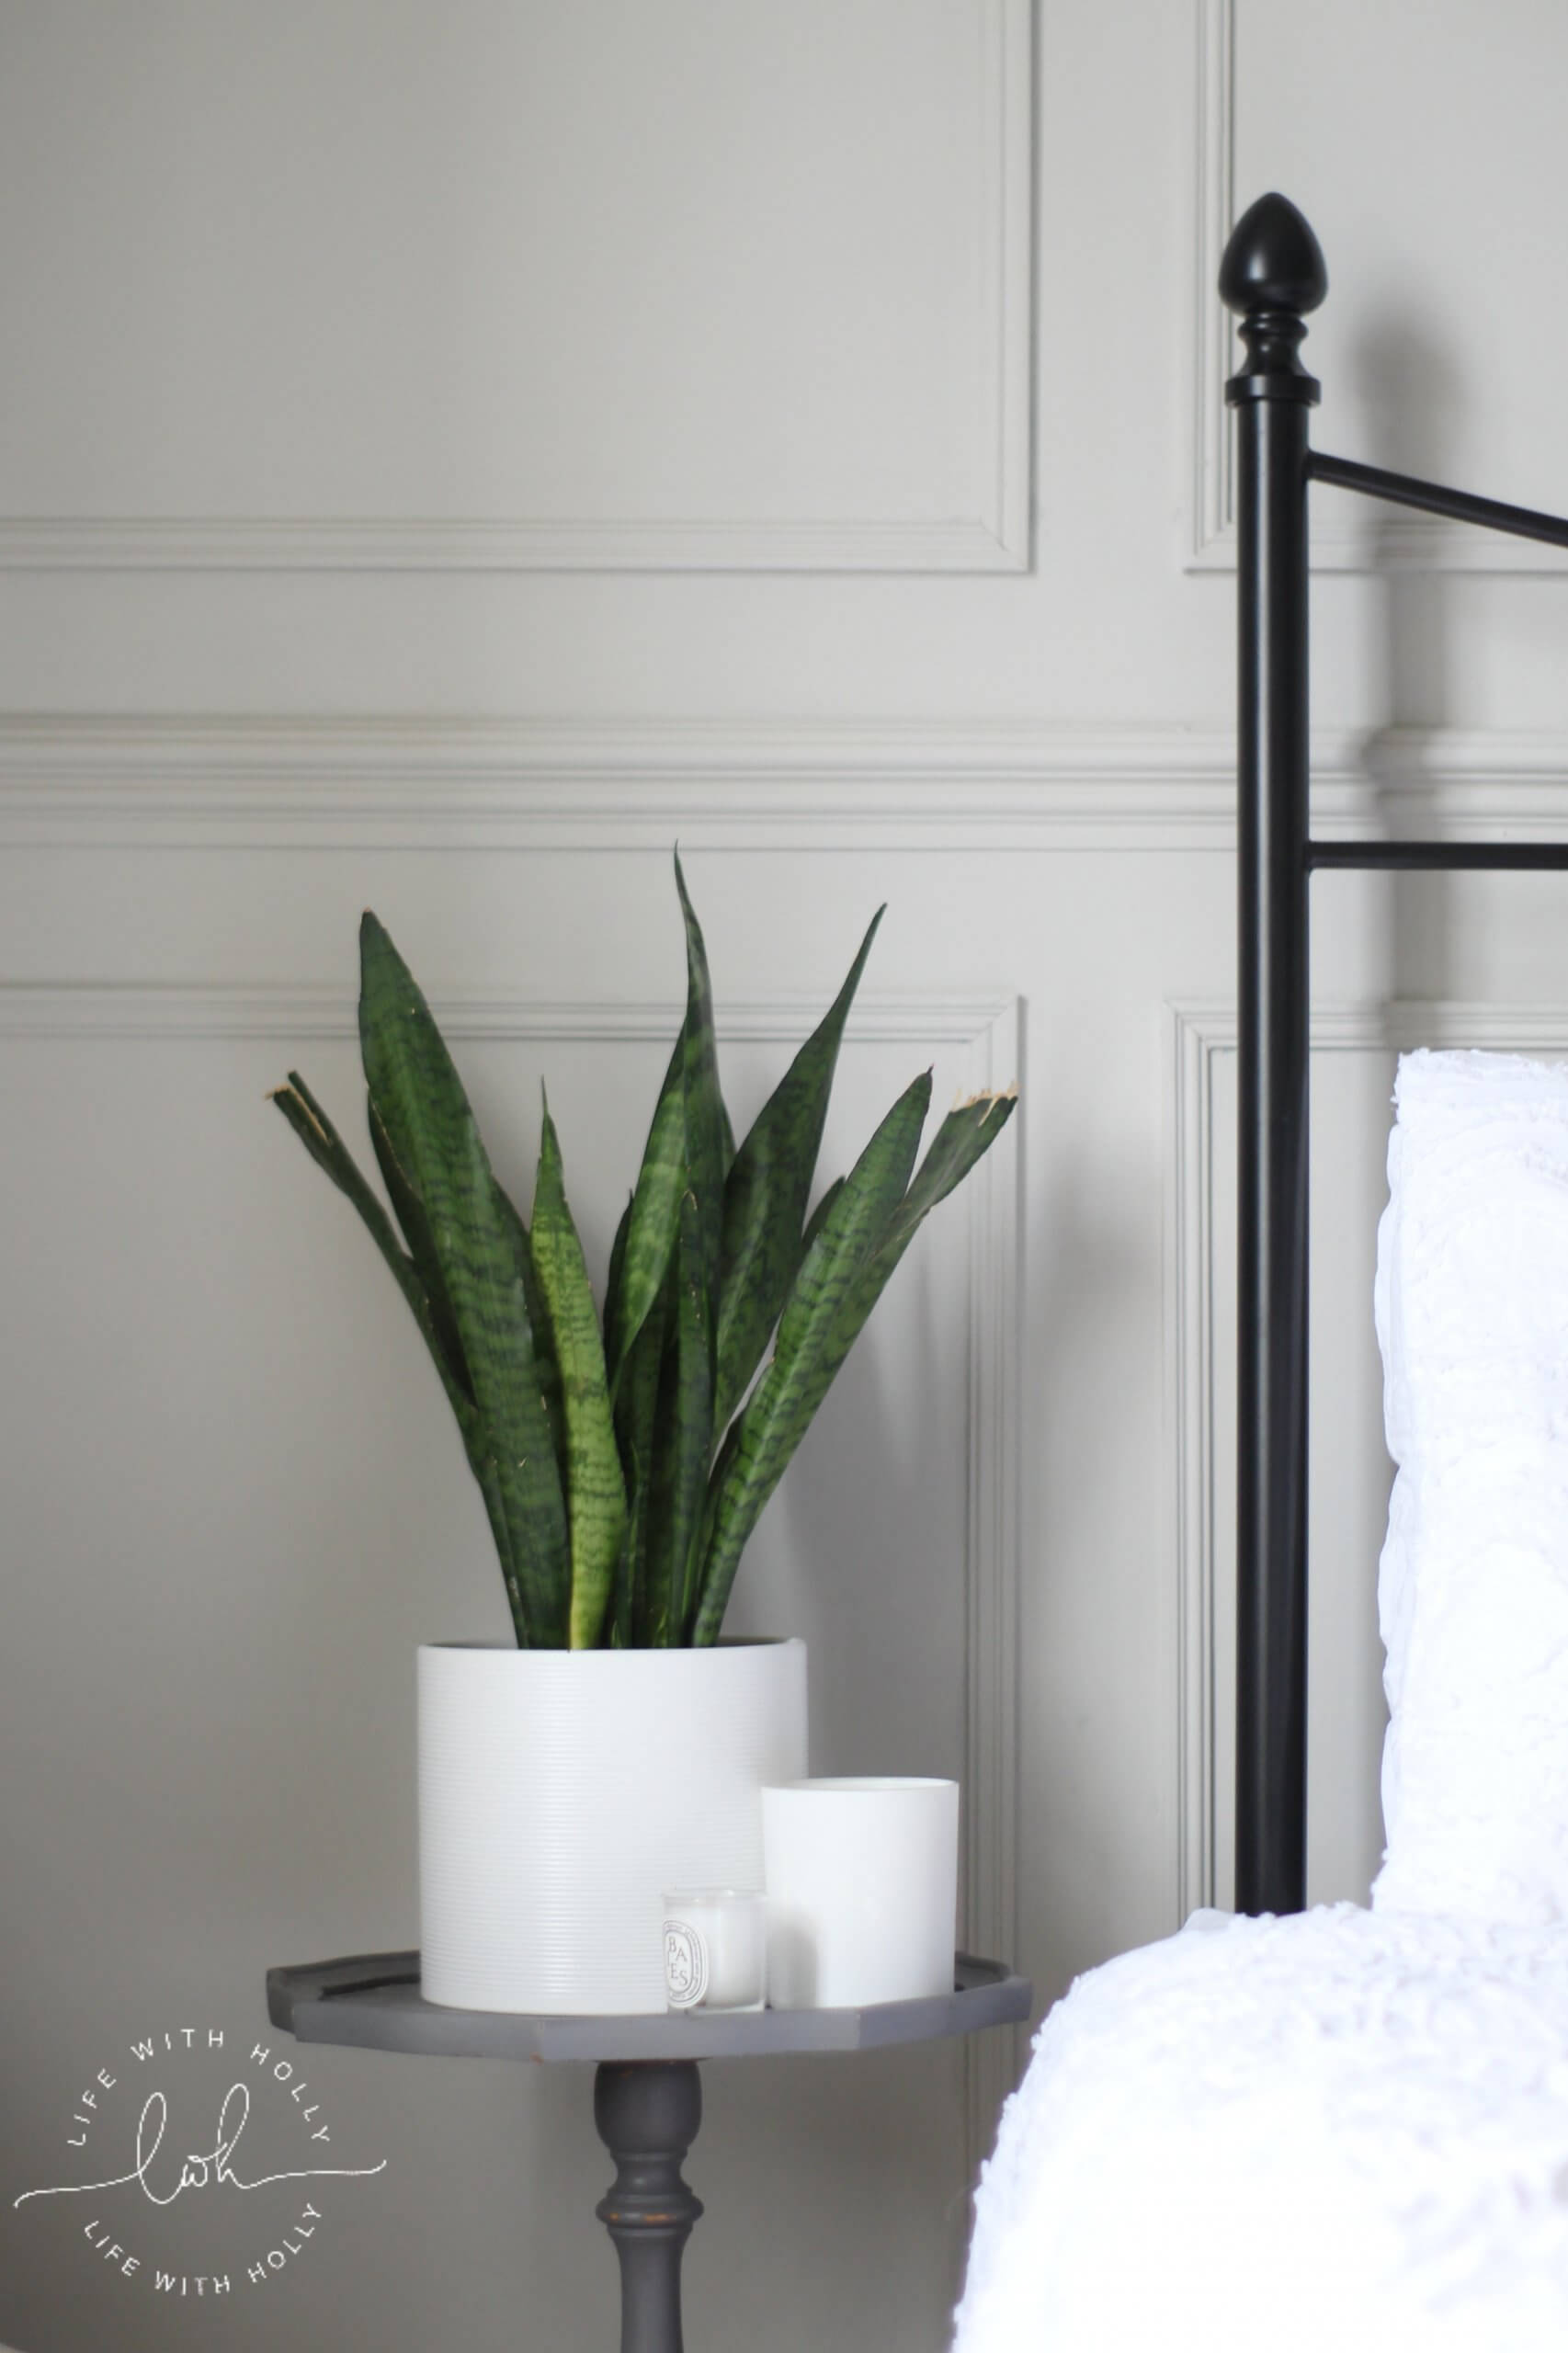 Snake Plant Sanseviera - - House Plants for Period Properties - House Plants that Don't Die in VIctorian Houses